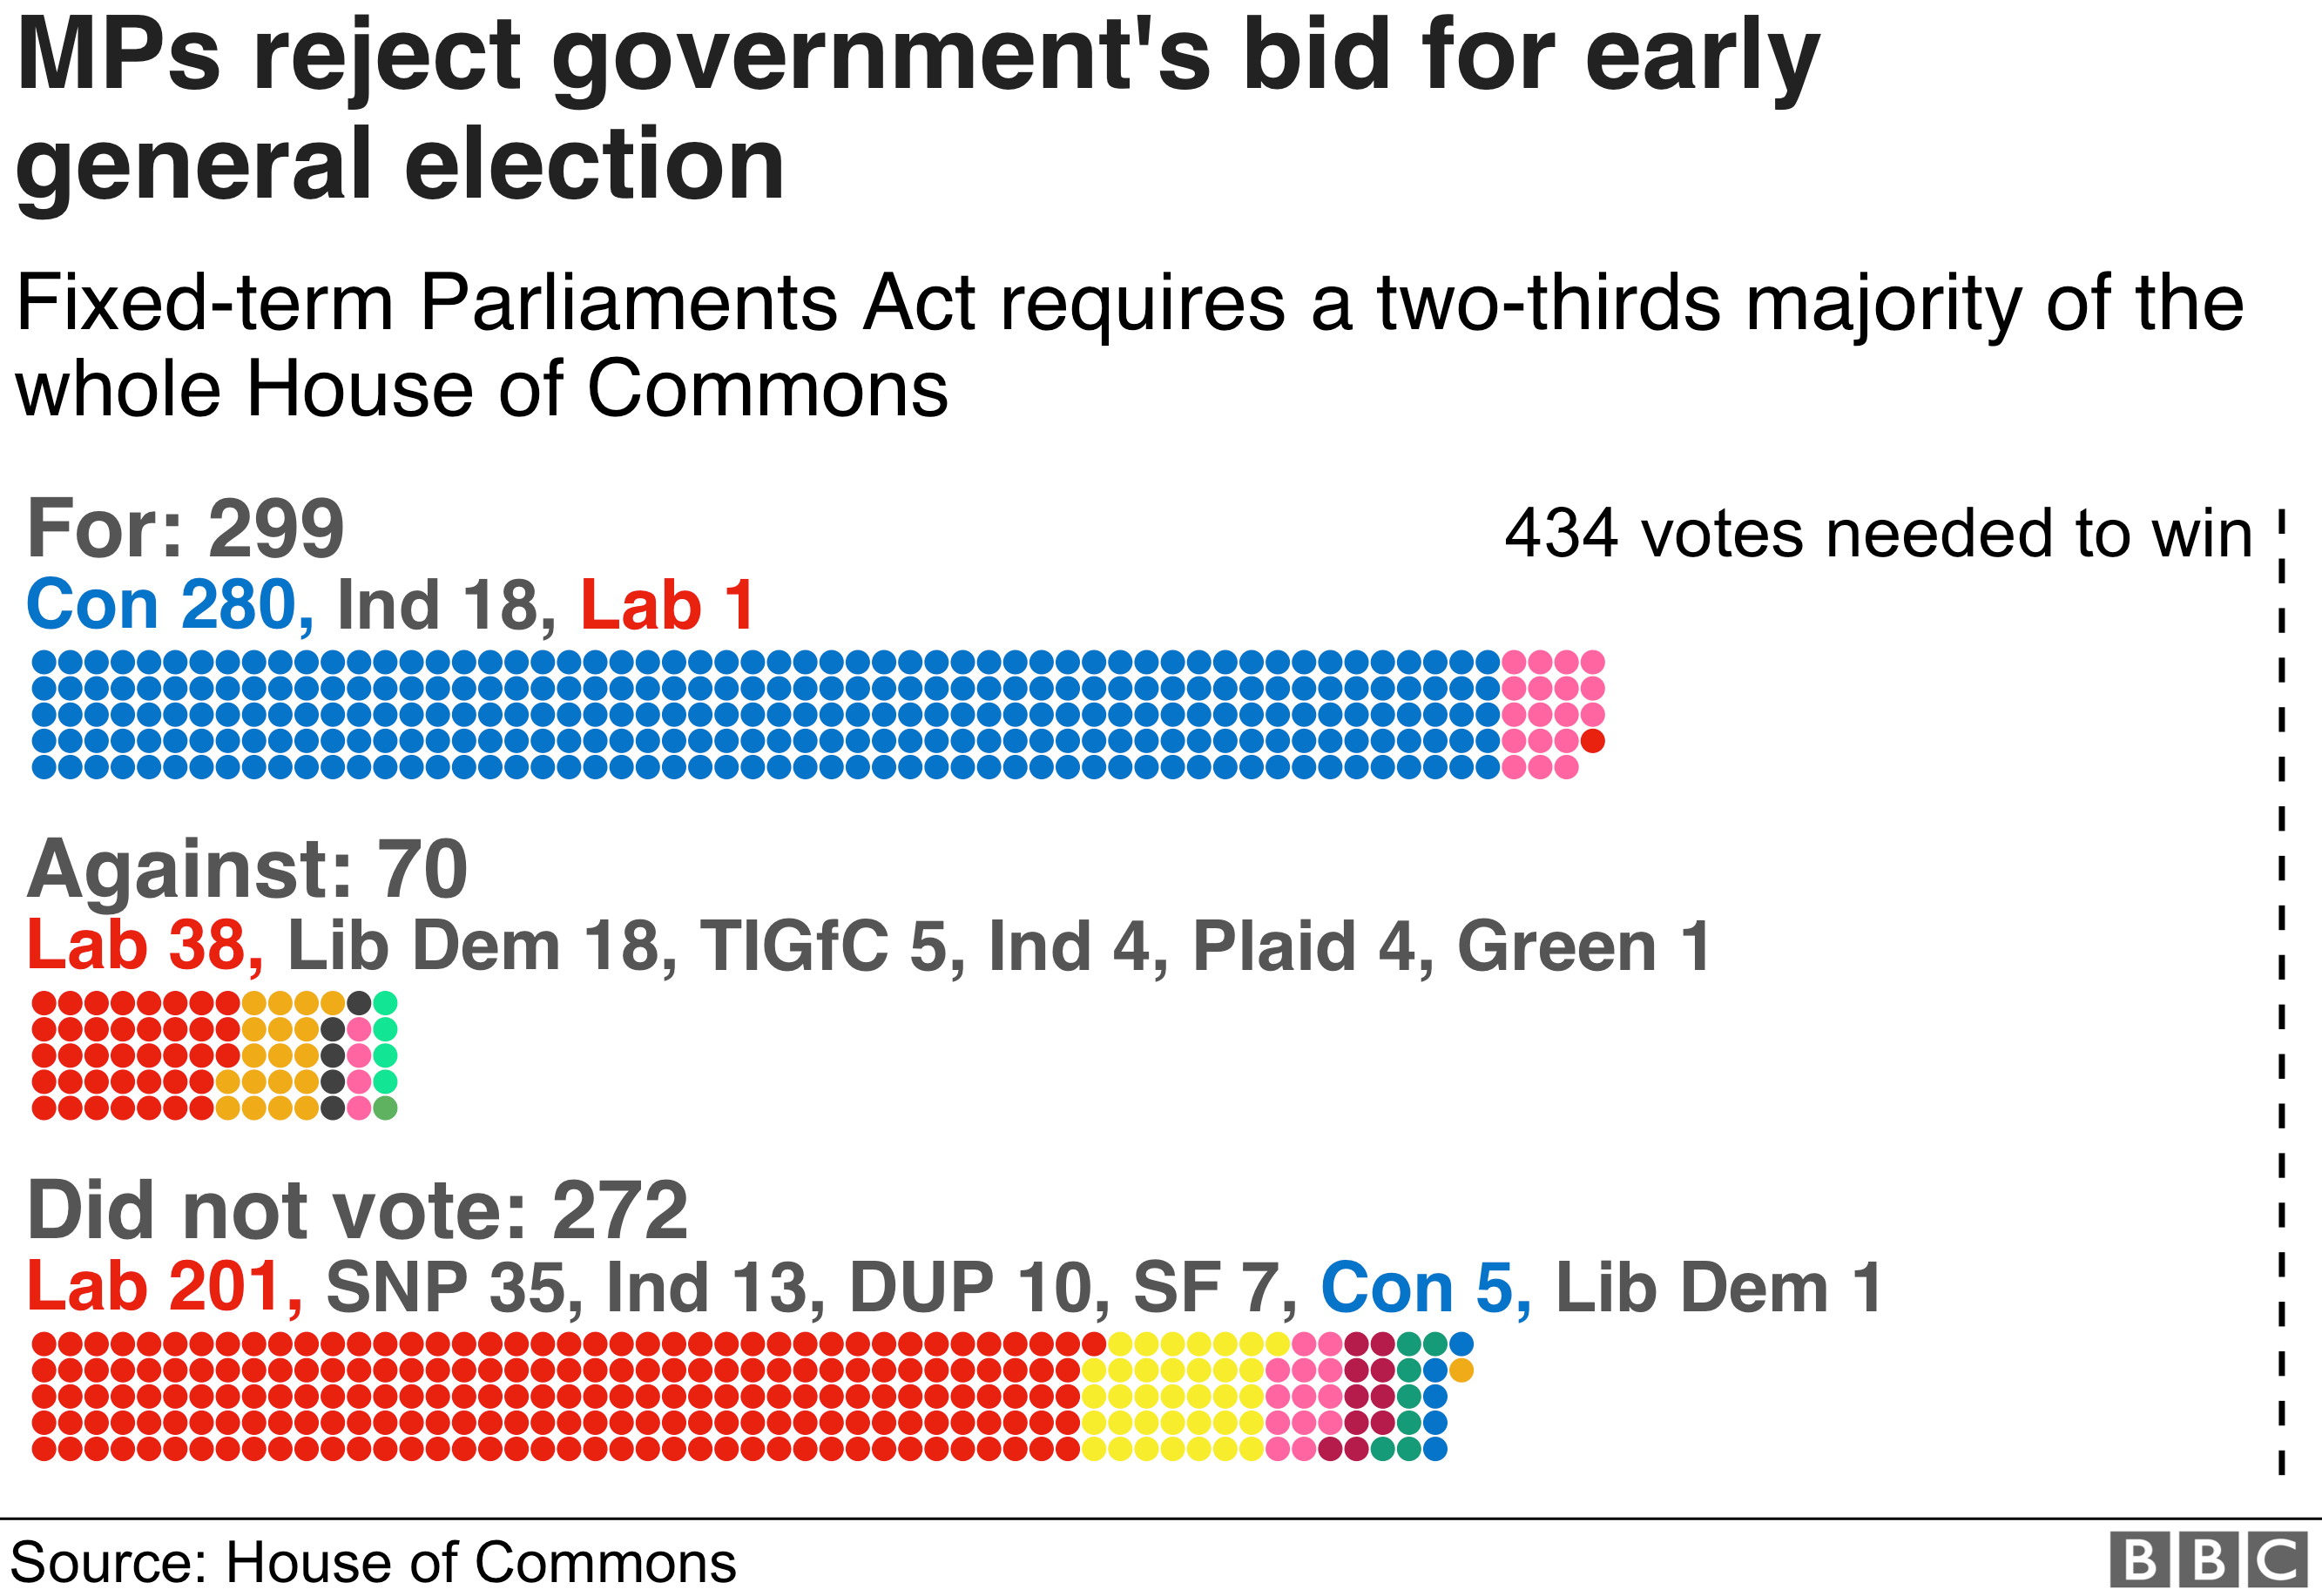 MPs reject Boris Johnson's call for an early general election for the third time. 299 voted for, 70 against and 272 didn't vote. The bill required a two-thirds majority as per the terms of the Fixed Term Parliaments Act